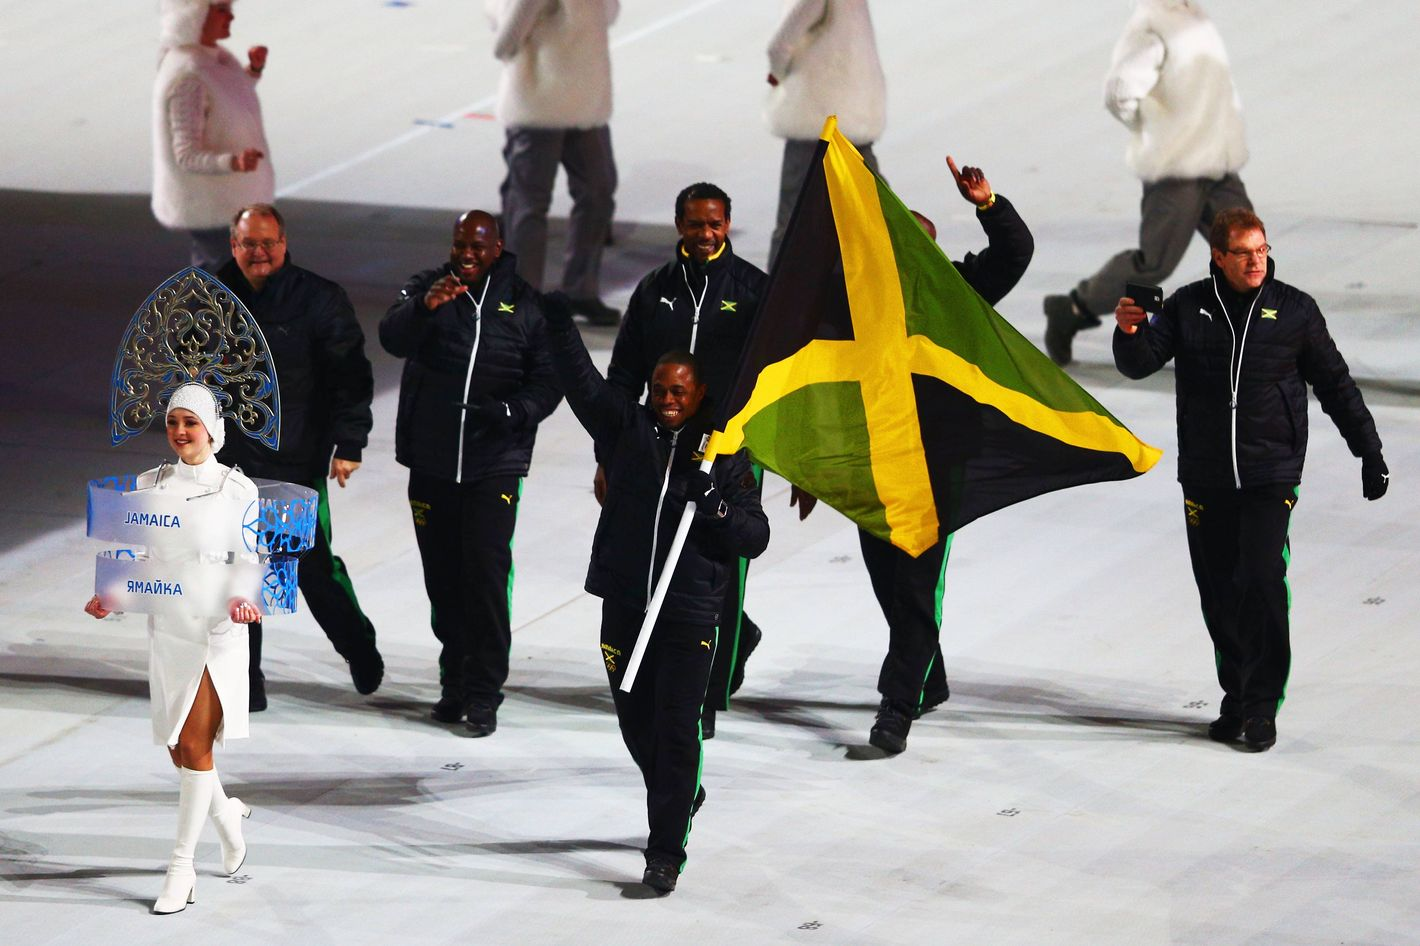 Bobsleigh racer Marvin Dixon of the Jamaica Olympic team carries his country's flag during the Opening Ceremony of the Sochi 2014 Winter Olympics at Fisht Olympic Stadium on February 7, 2014 in Sochi, Russia.